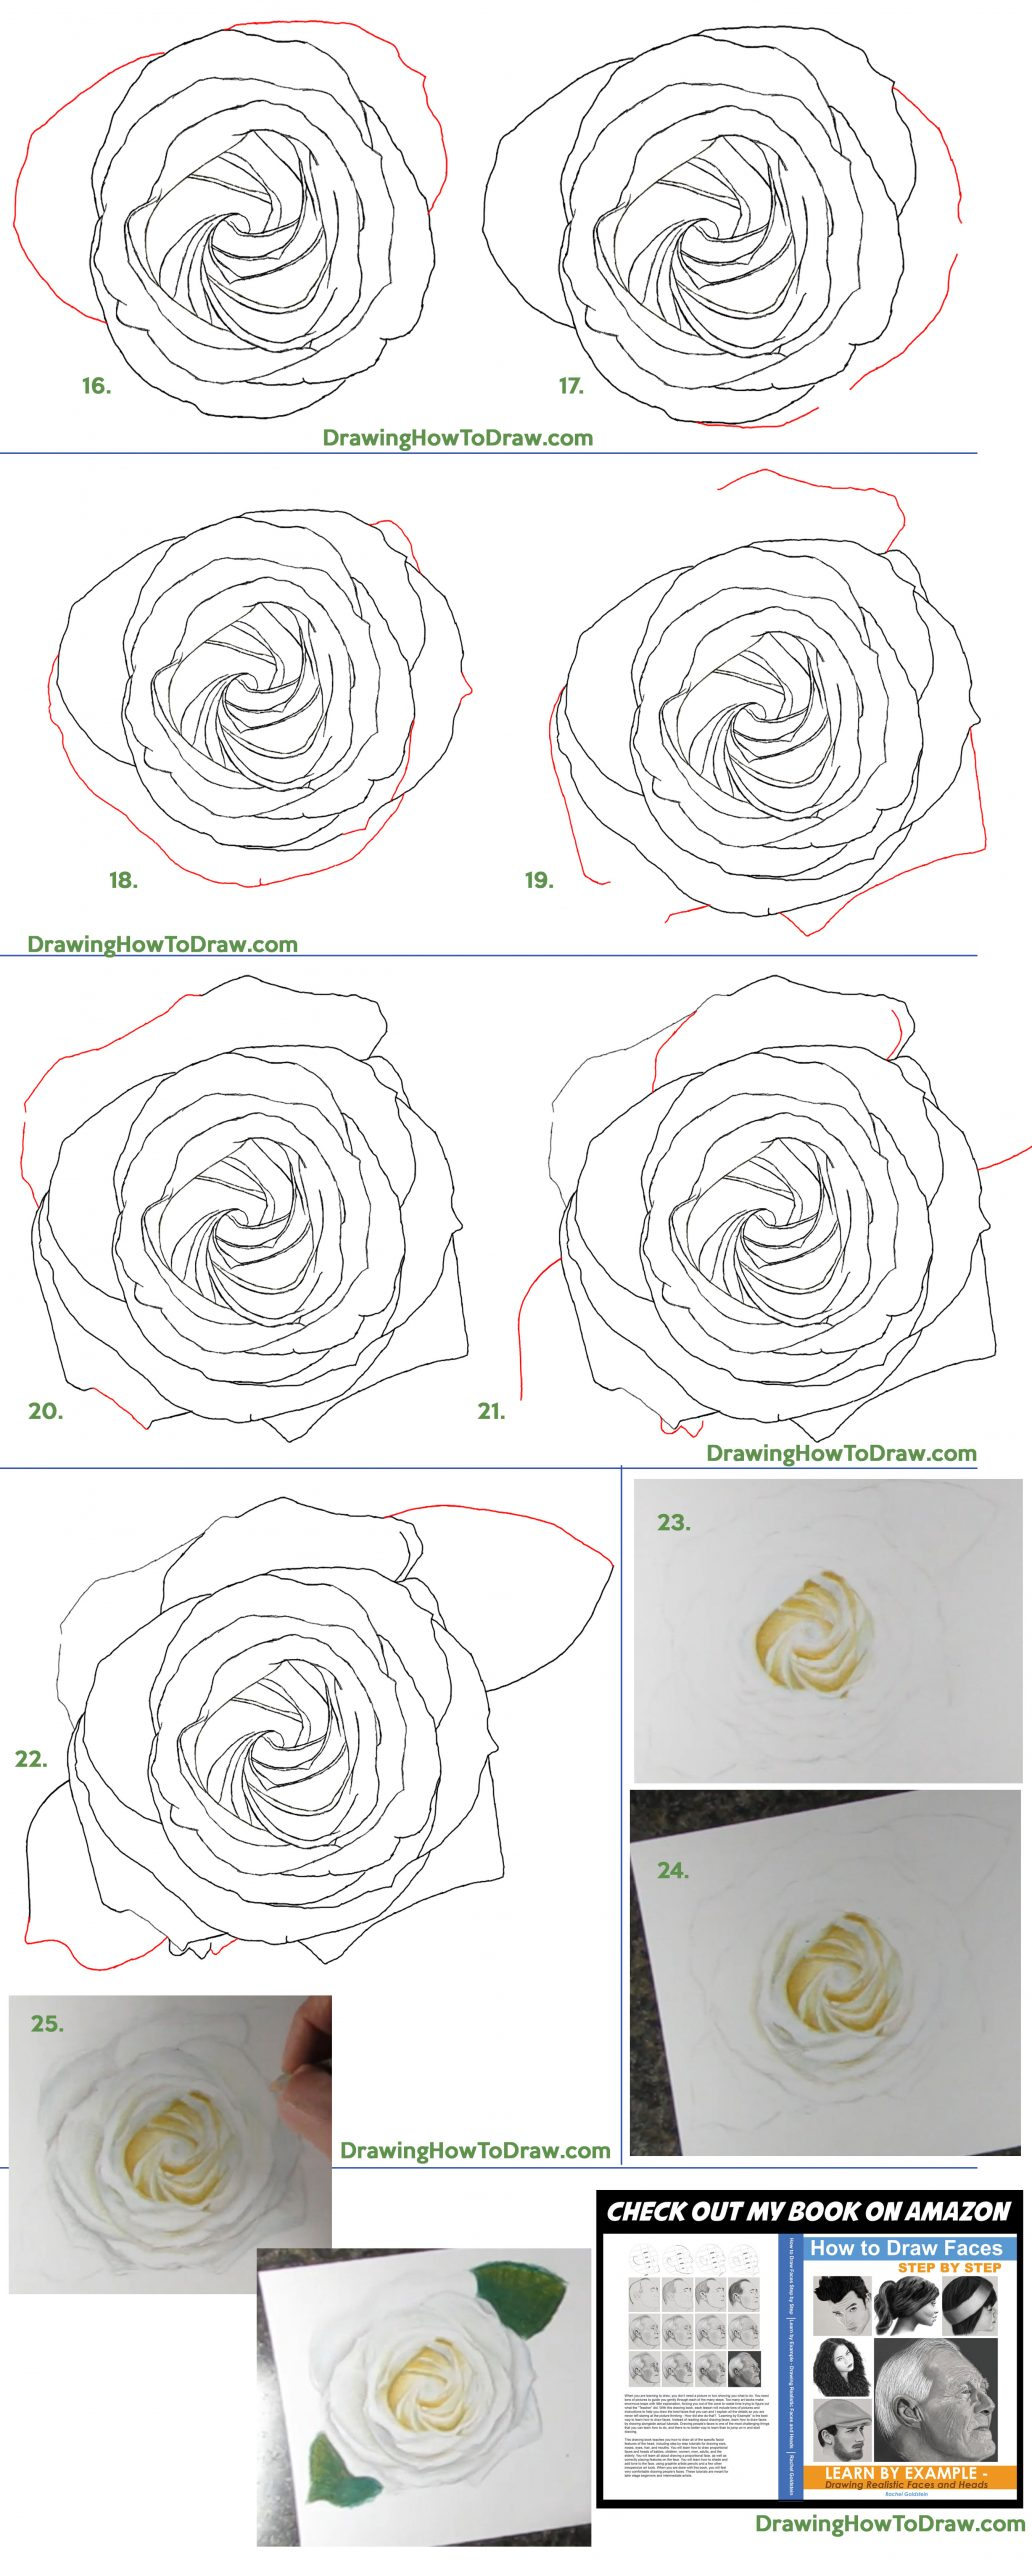 Learn How to Draw a White Rose from Above for Valentine's Day - Using Pencils and Colored Pencils - Step by Step Drawing Tutorial